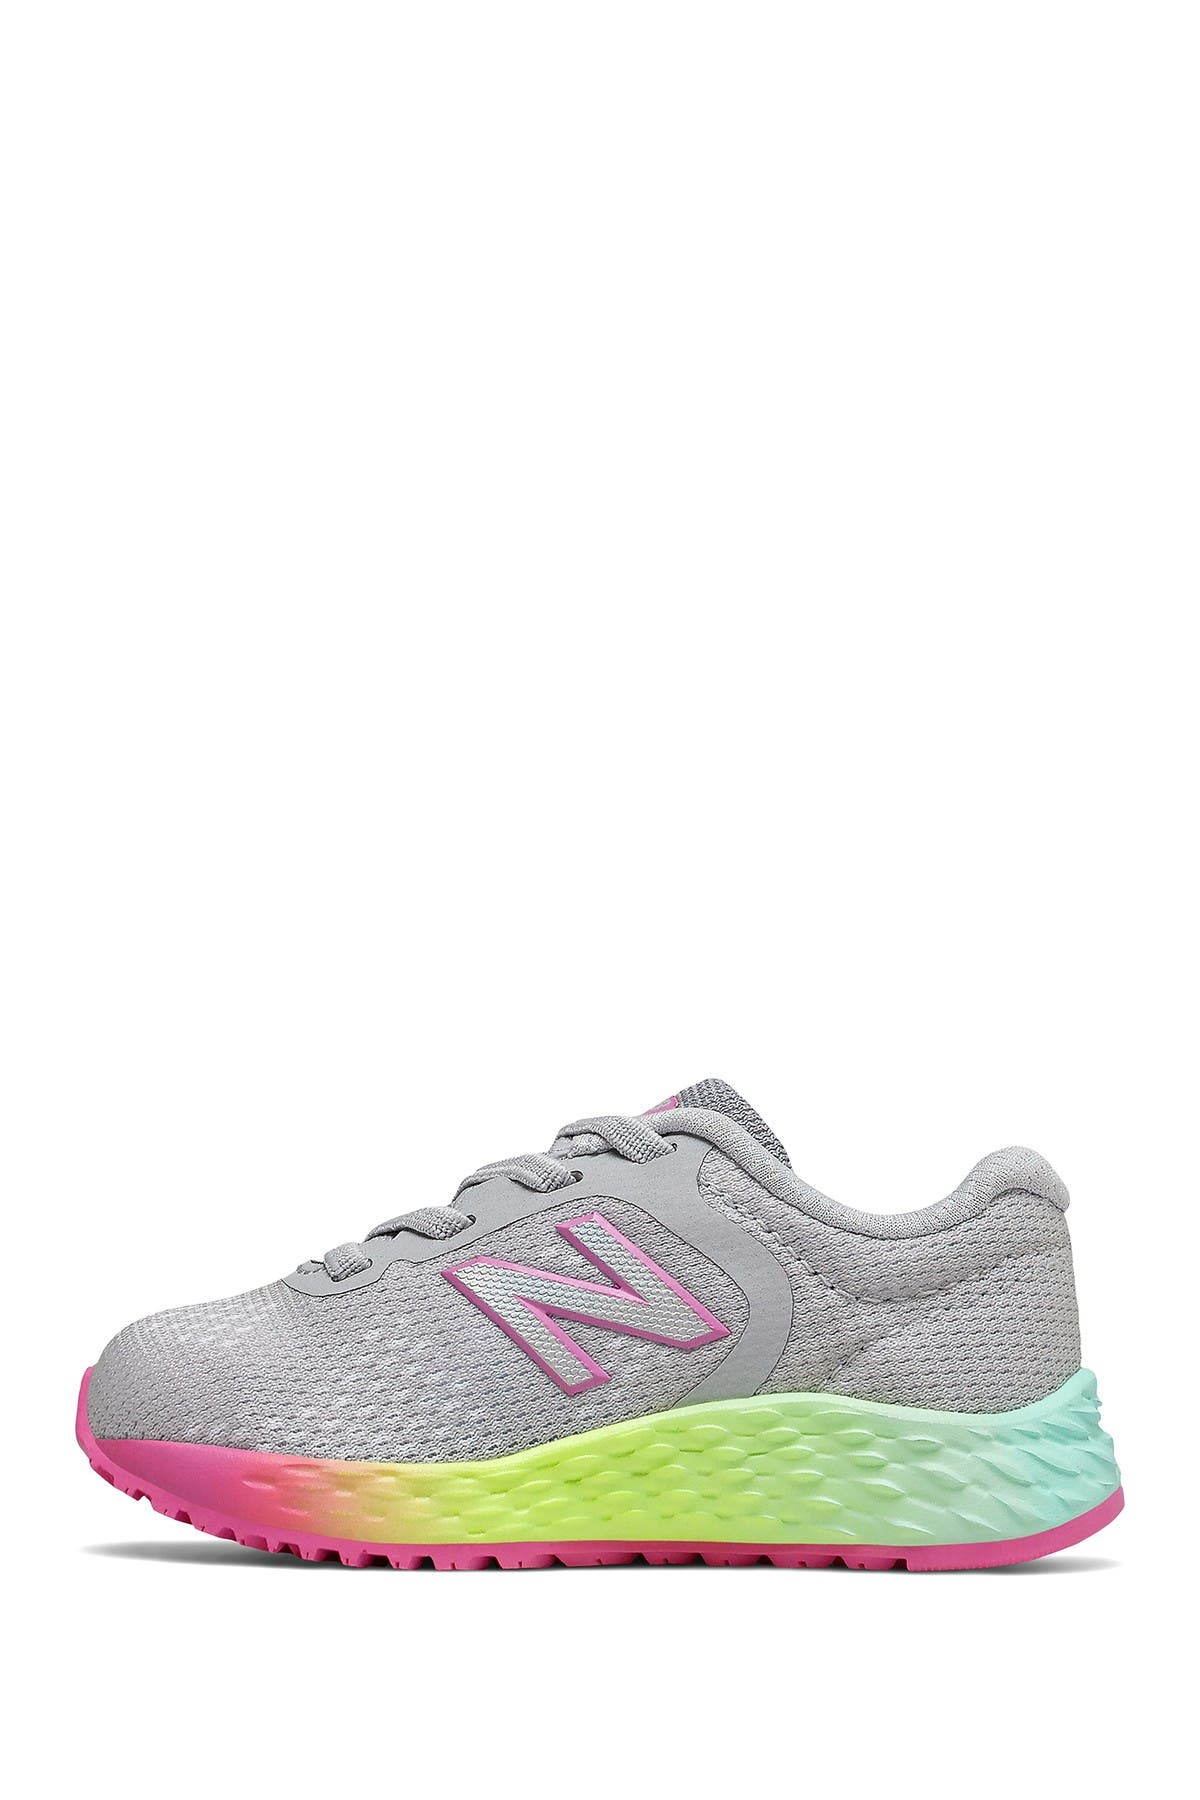 New Balance Arishi v2 Athletic Sneaker (Baby & Toddler) - Wide Width Available